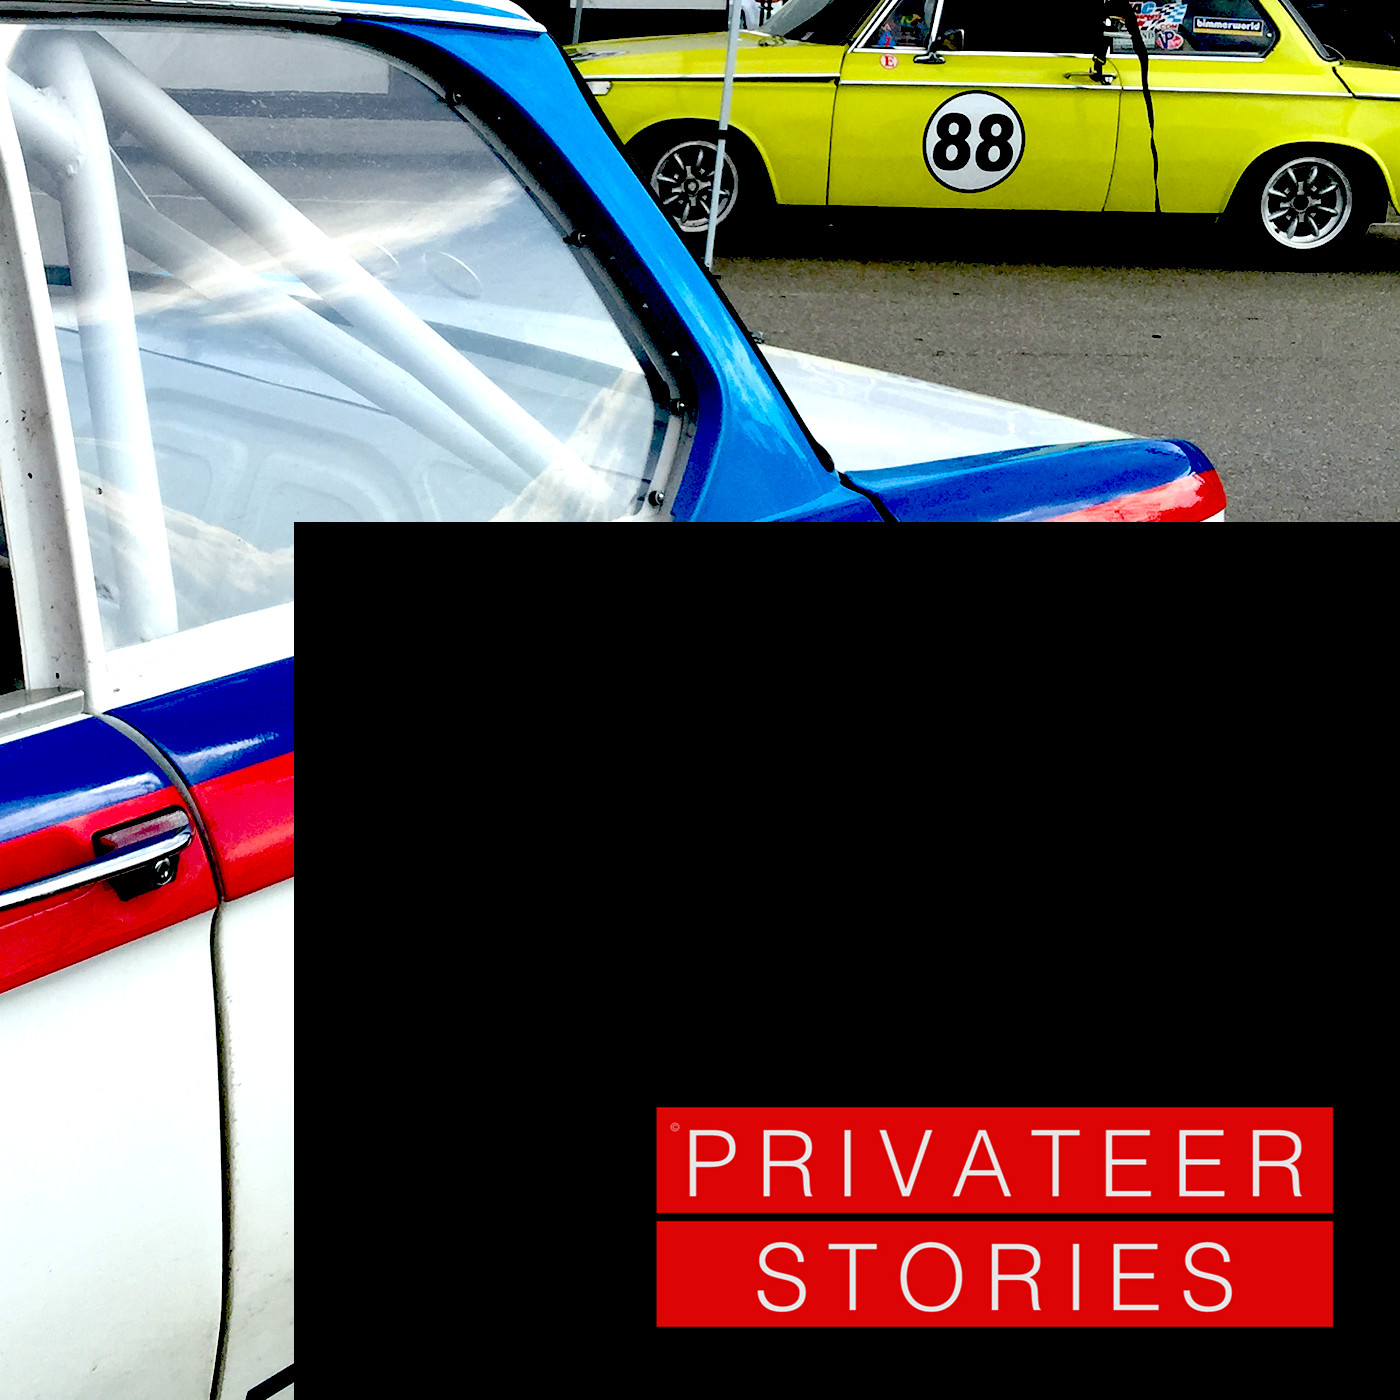 PRIVATEER STORIES